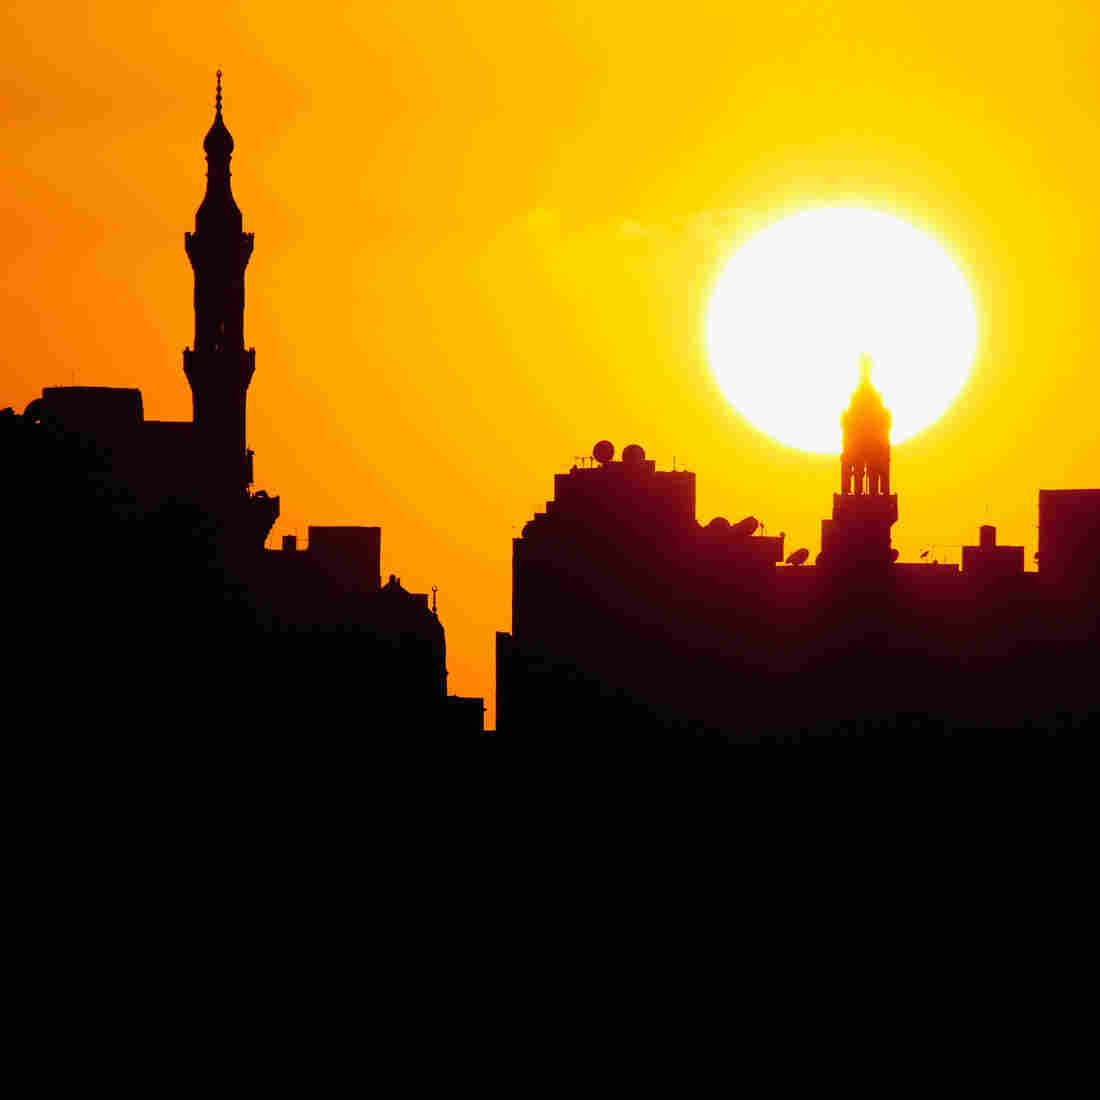 The sun sets over Alexandria, Egypt. The Brits brought daylight saving time to Egypt, but the country is currently DST-free.